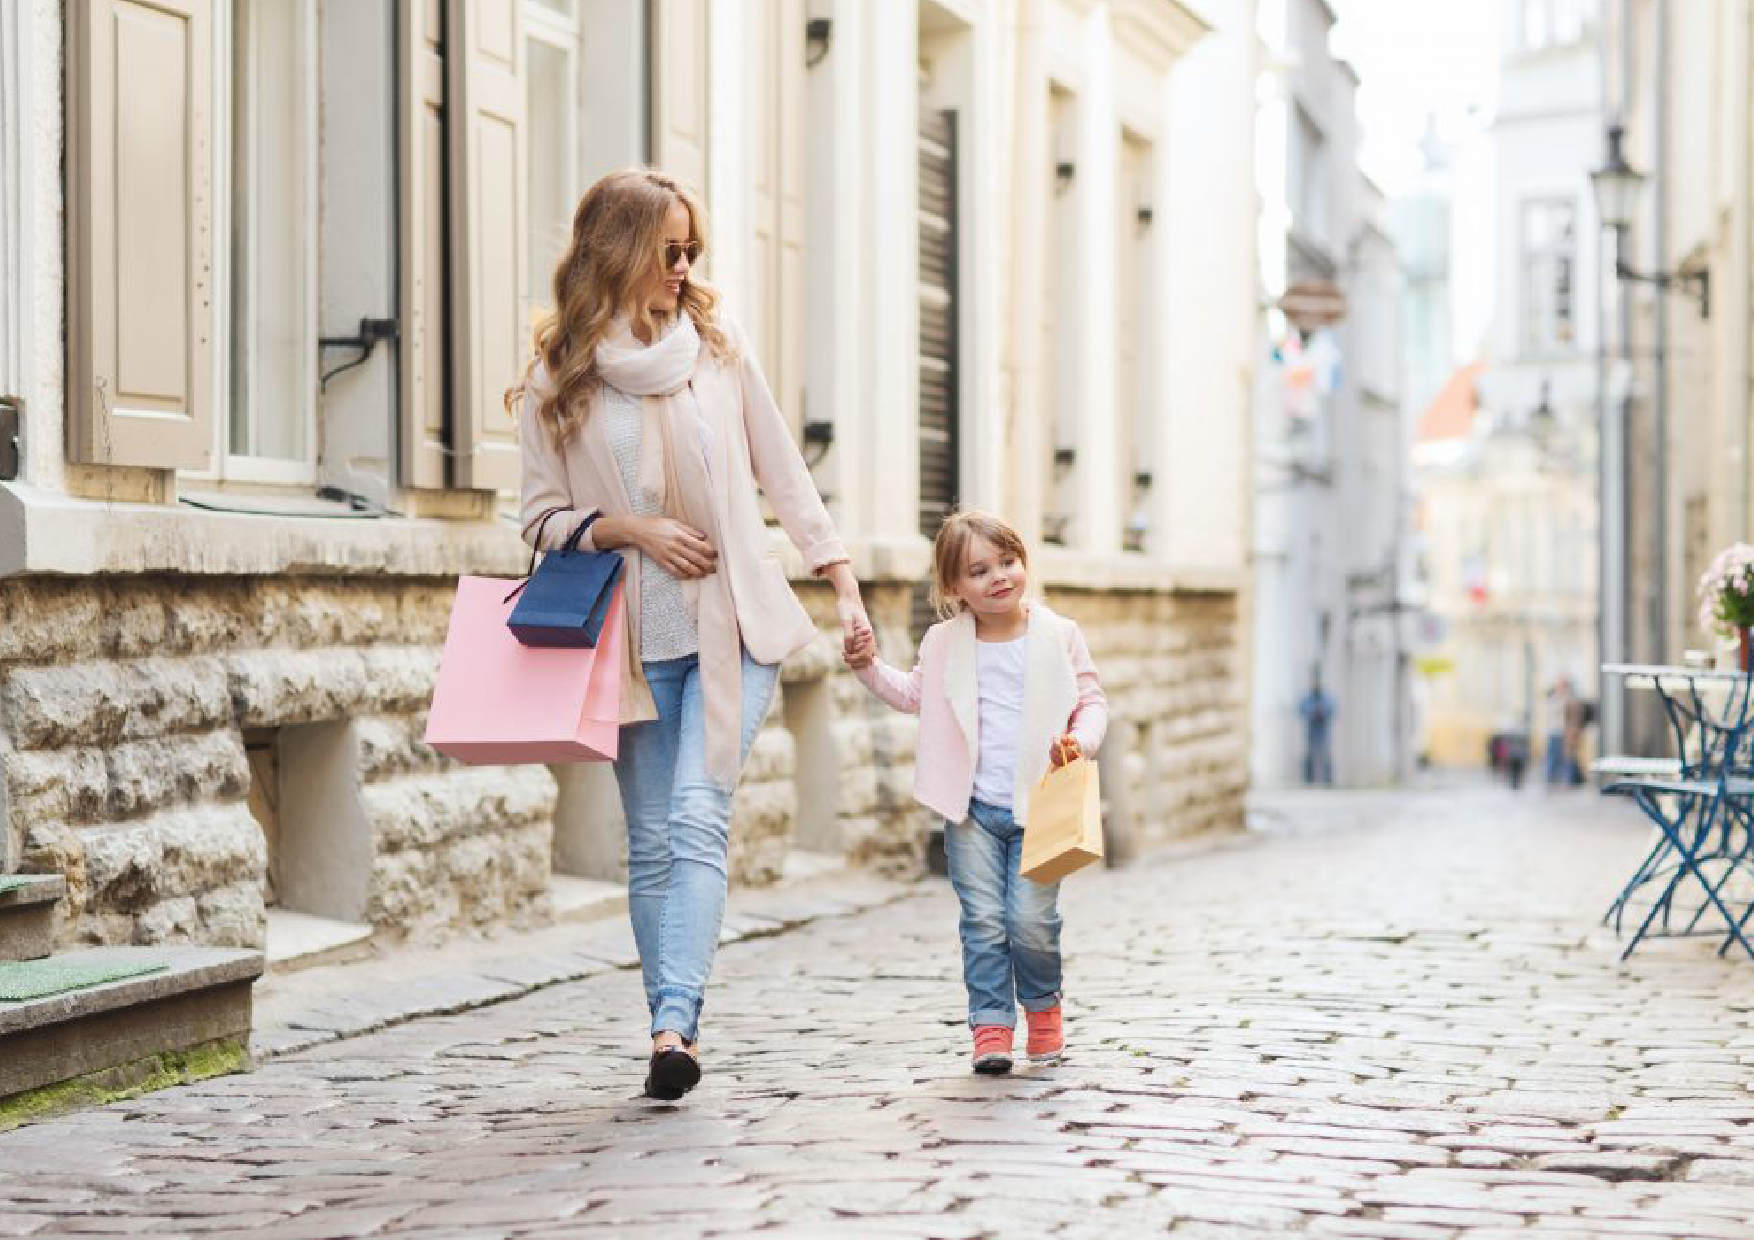 Mother & Daughter walking through the streets with shopping bags in hand